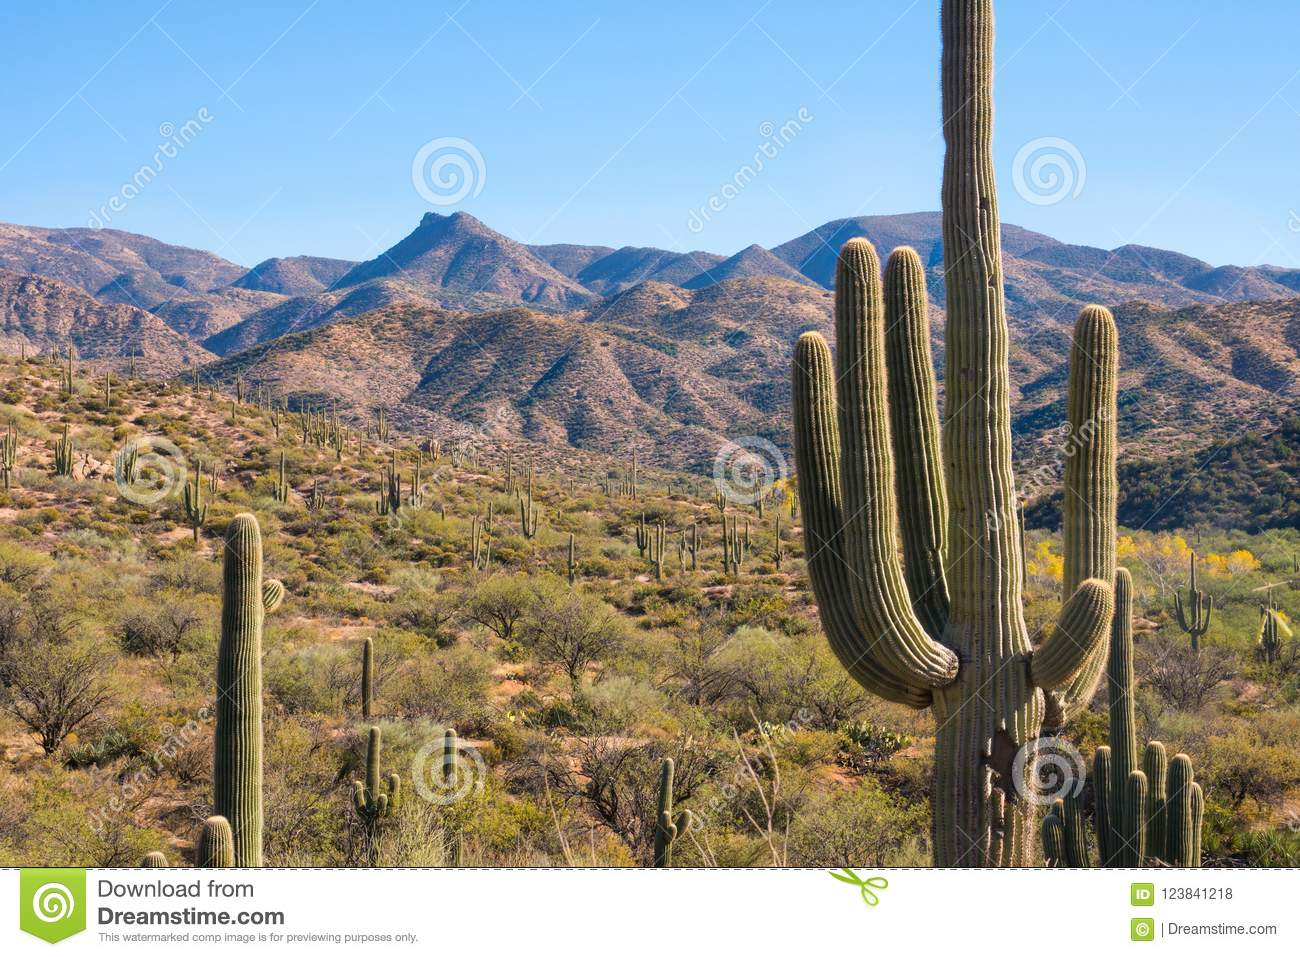 Scenic and historic mountain view at Apache trail Arizona, cactus landscape red rock formations